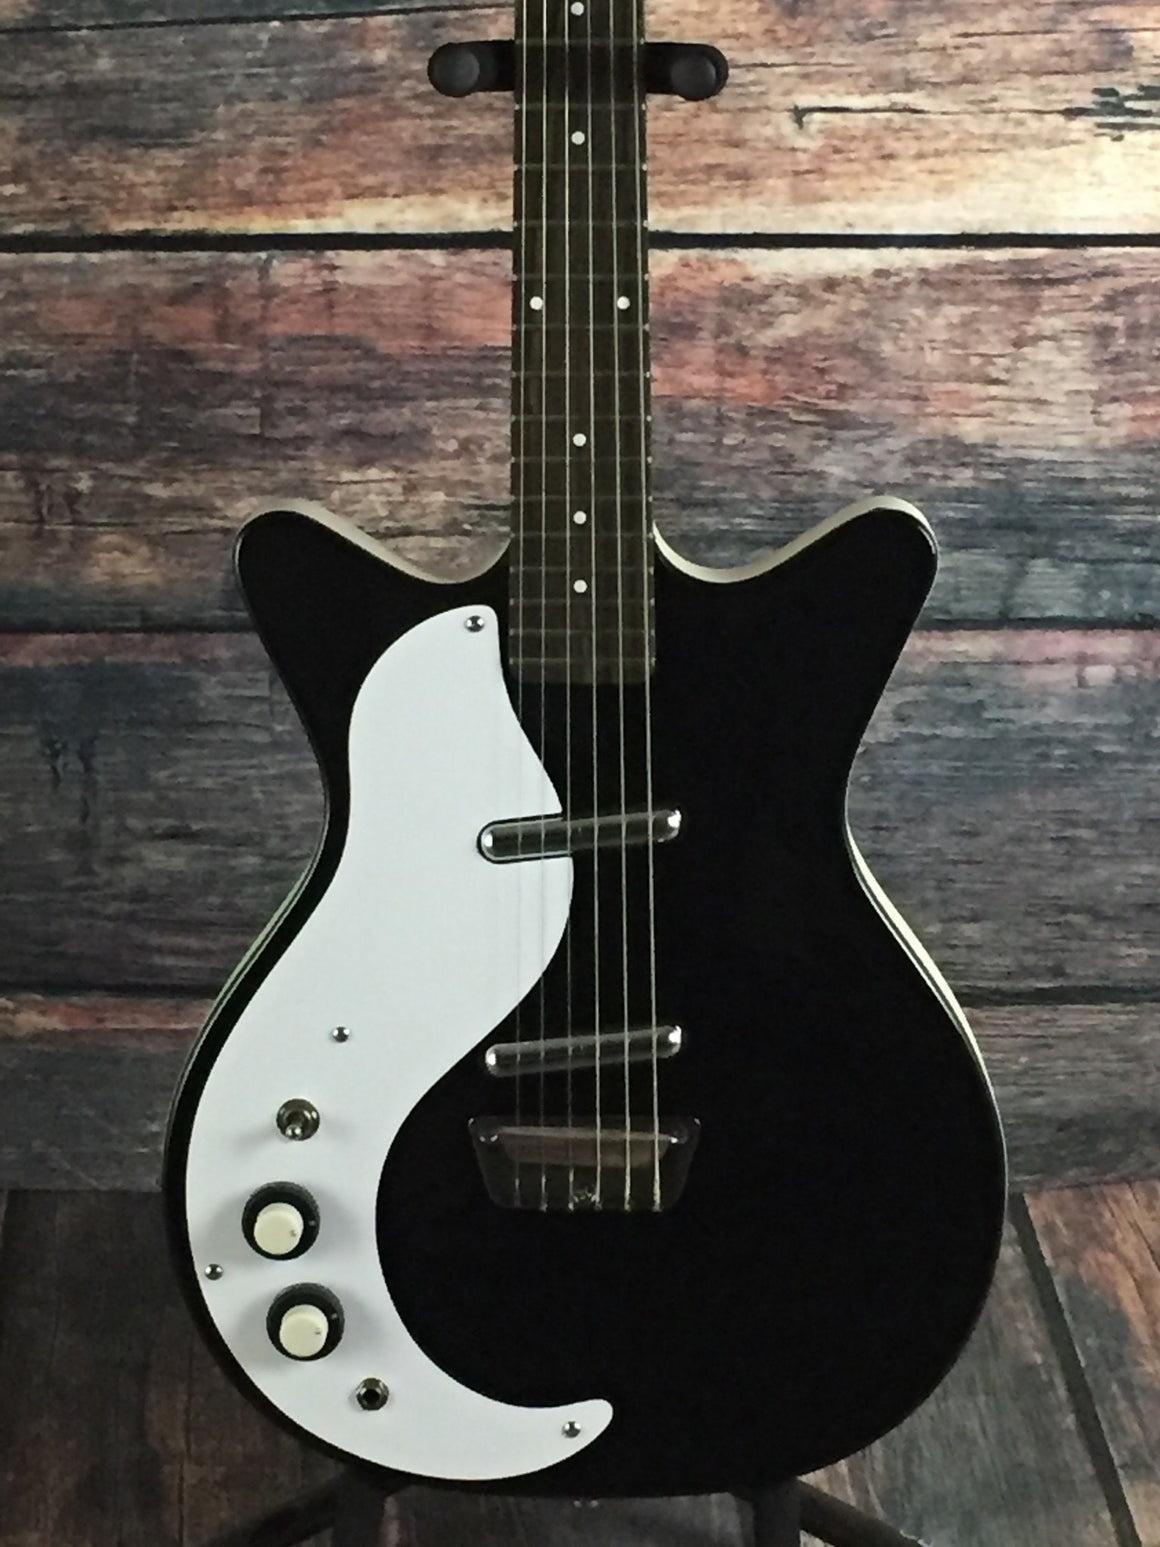 Danelectro Electric Guitar Danelectro Left Handed 59 Reissue Electric Guitar